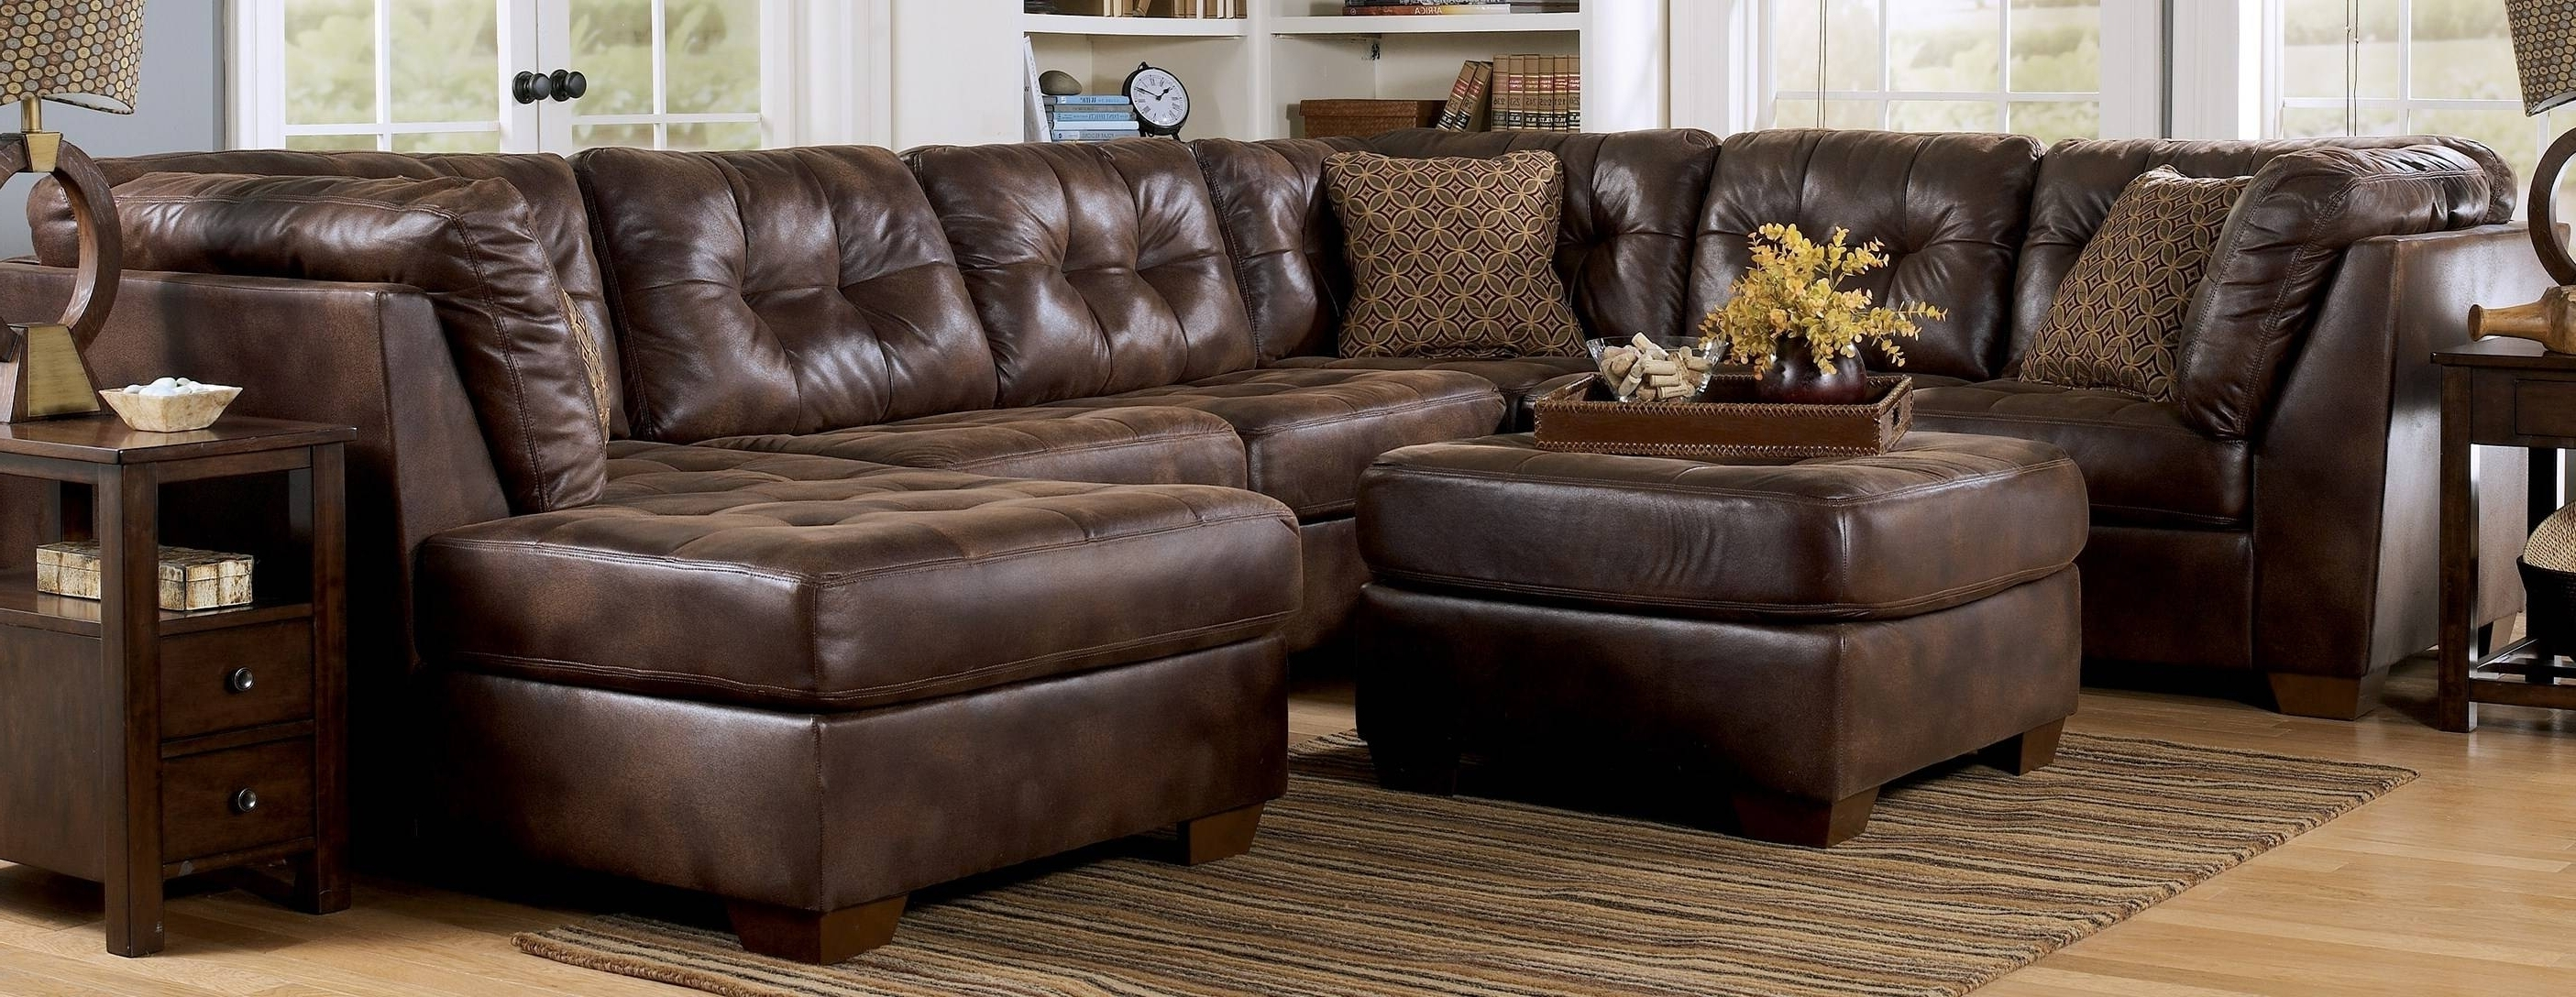 Brilliant Sectional Sofas Cincinnati – Buildsimplehome With Most Recently Released Cincinnati Sectional Sofas (View 3 of 20)